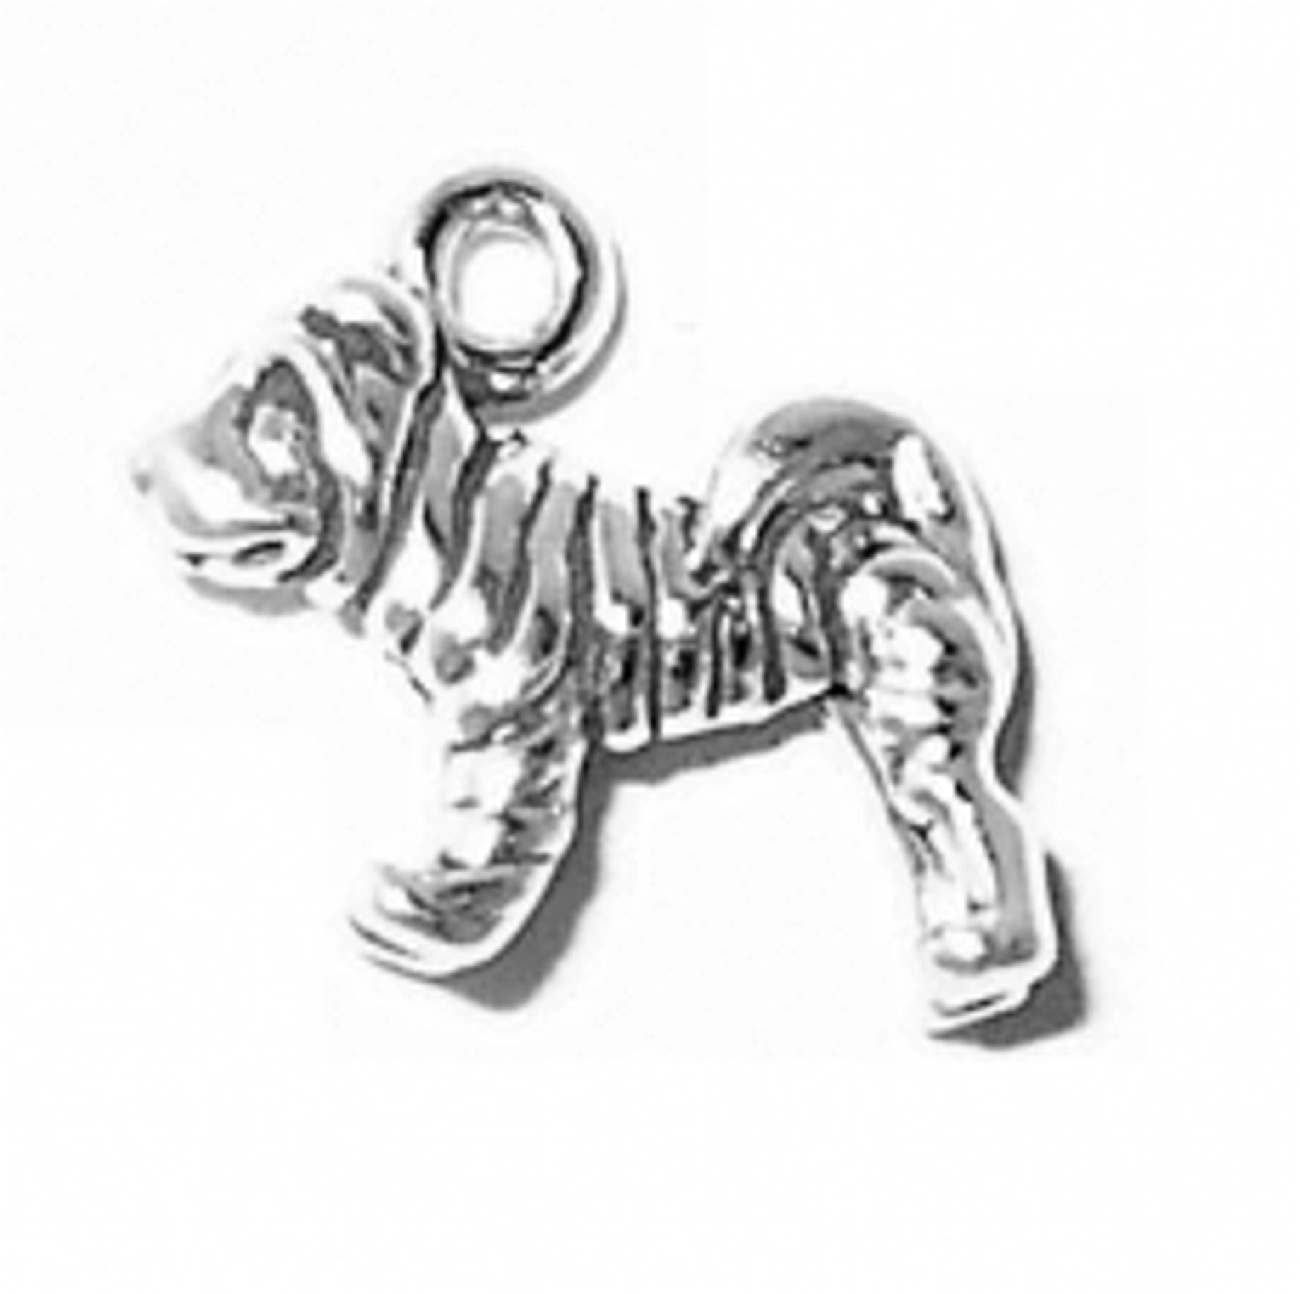 3D Small Wrinkled Shar Pei Dog Breed Charm